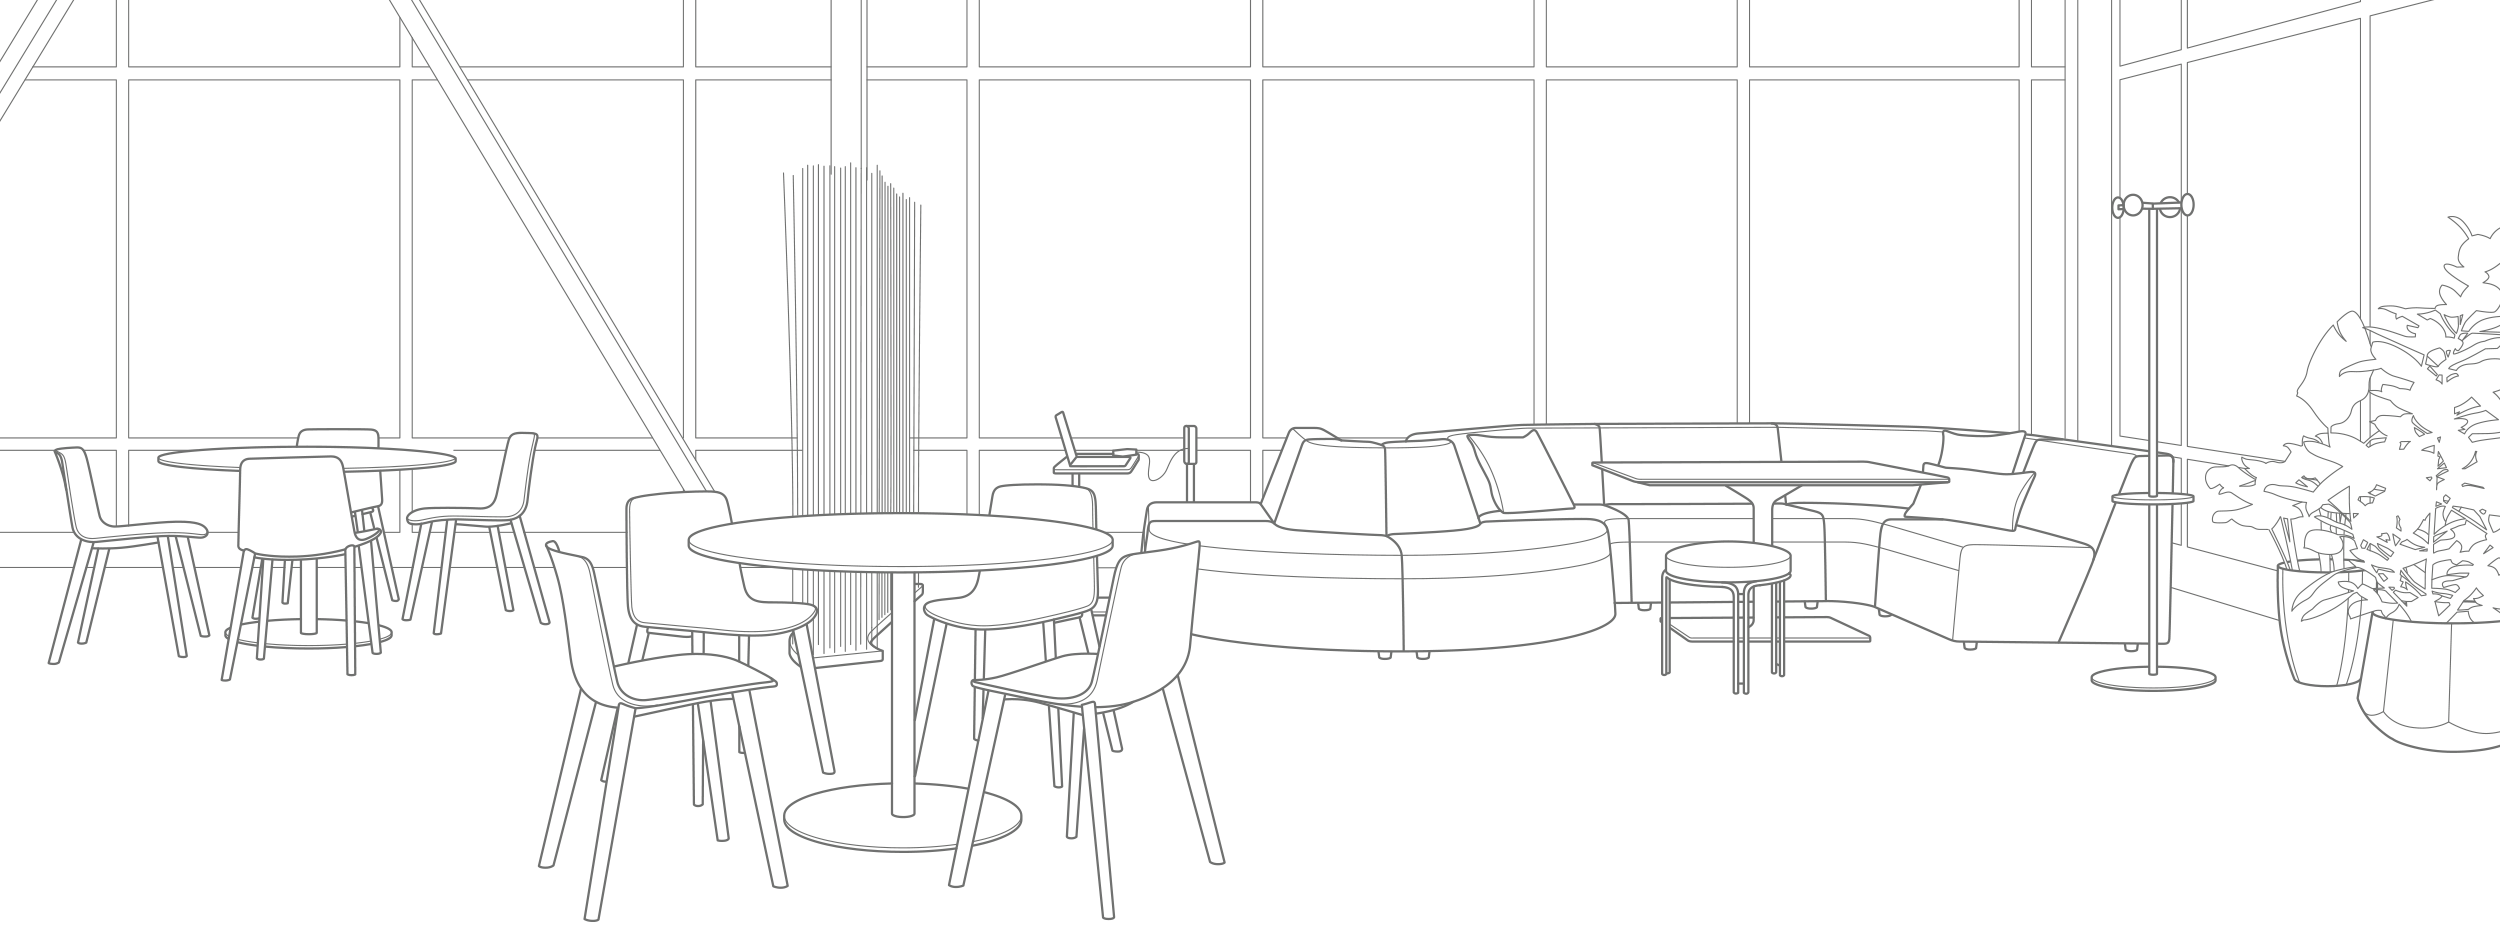 Office Social Space Cafe Design Plans Steelcase